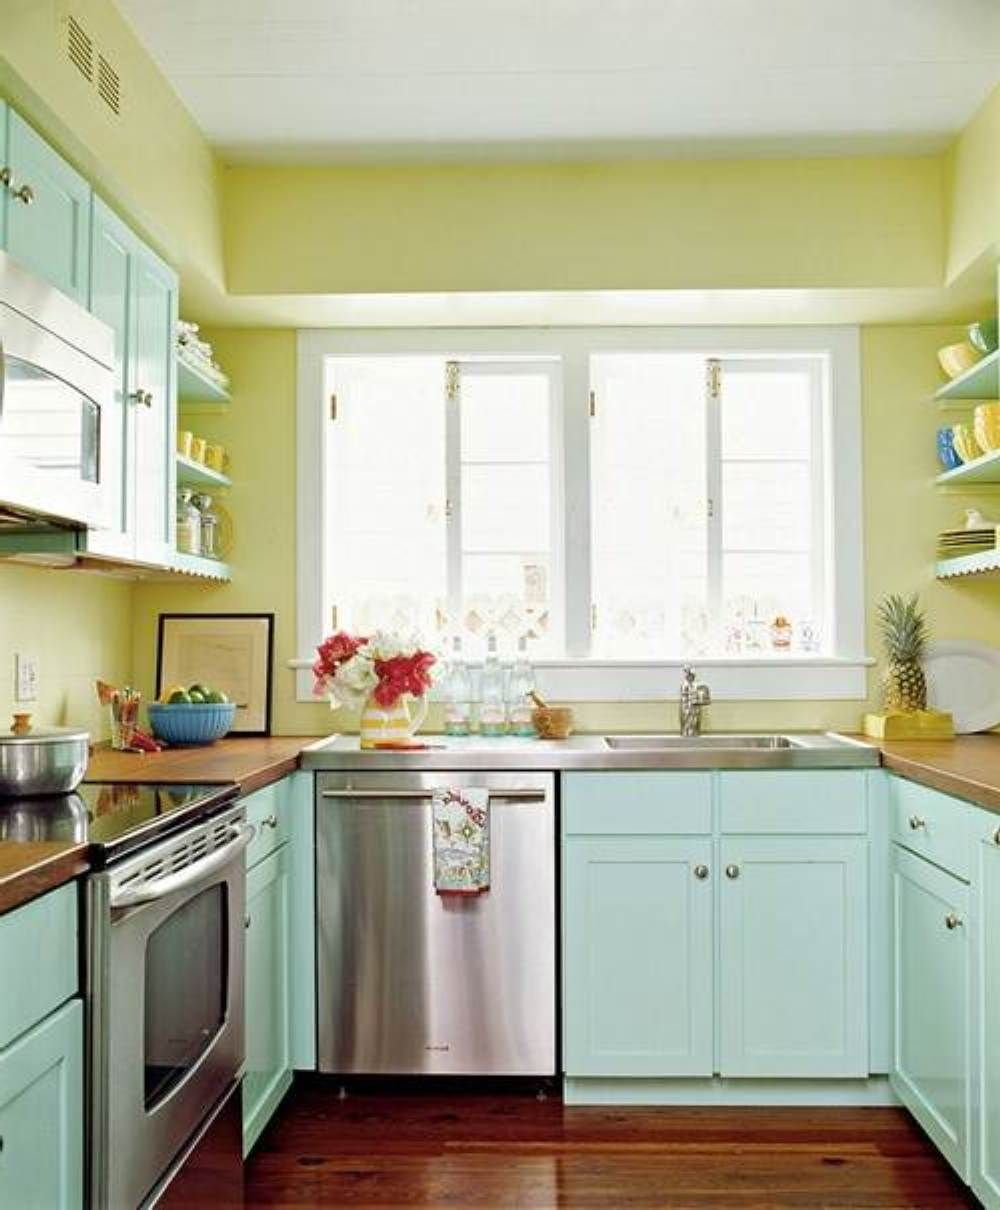 What Color To Paint Kitchen Walls: Small Kitchen Design Ideas